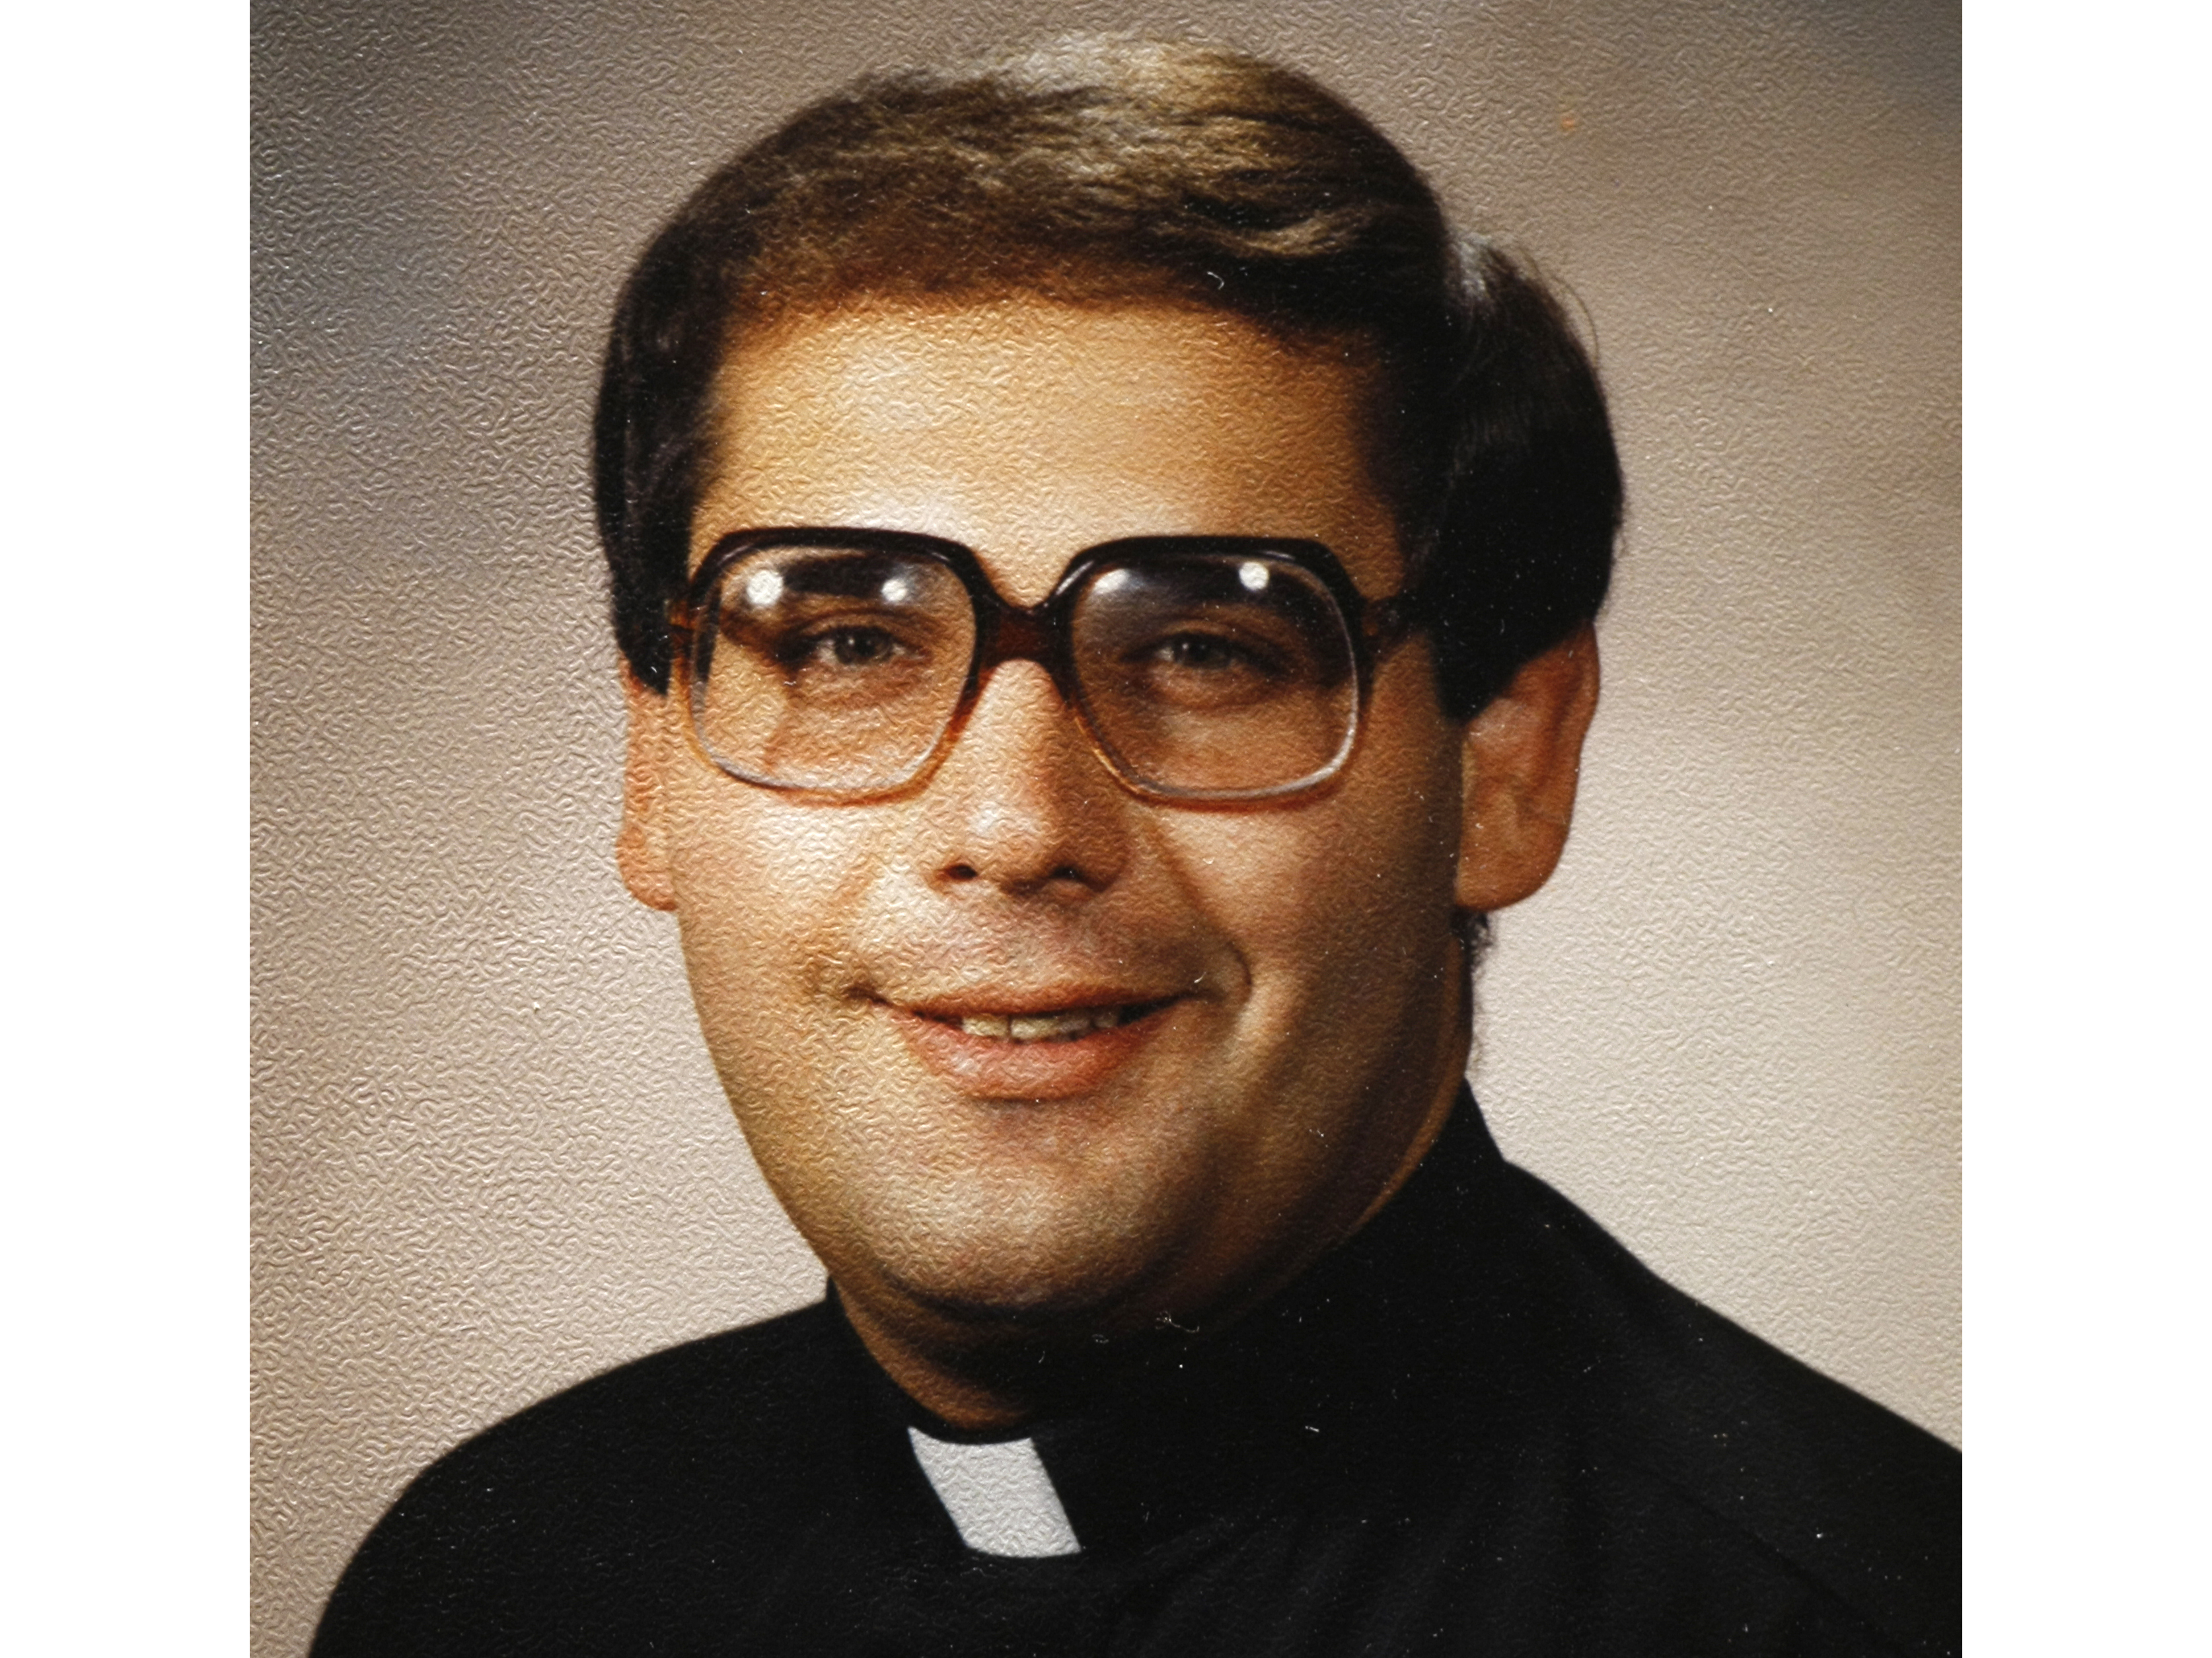 Former priest John Capparelli in an undated photo. (NJ.com and The Star-Ledger file)